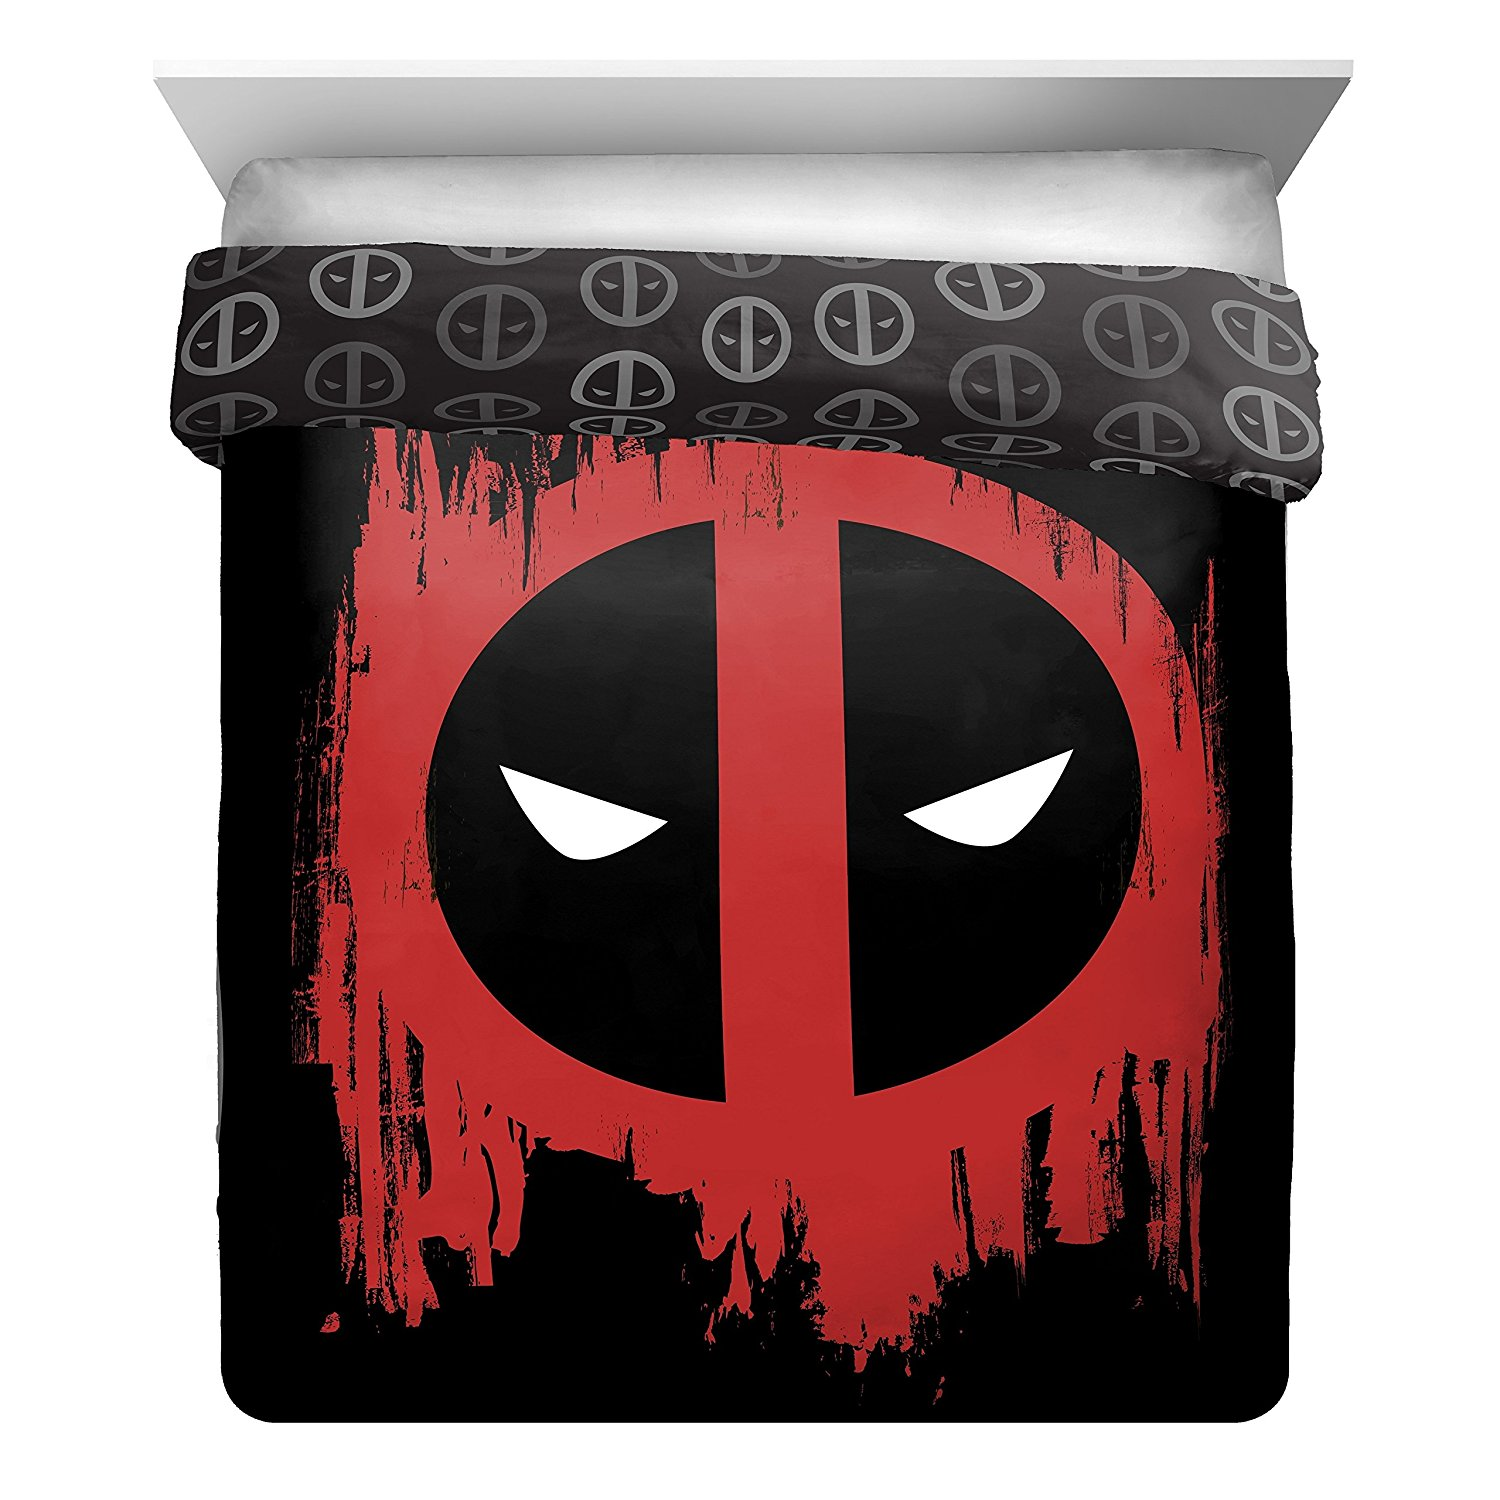 L&M 1 Piece Black Red Deadpool Superhero Theme Reversible Comforter Full Sized, Beautiful Marvel Comic Iconic Superheroes, Animated Movie Character Print Bedding, Bold Colors, Style, Plush Polyester